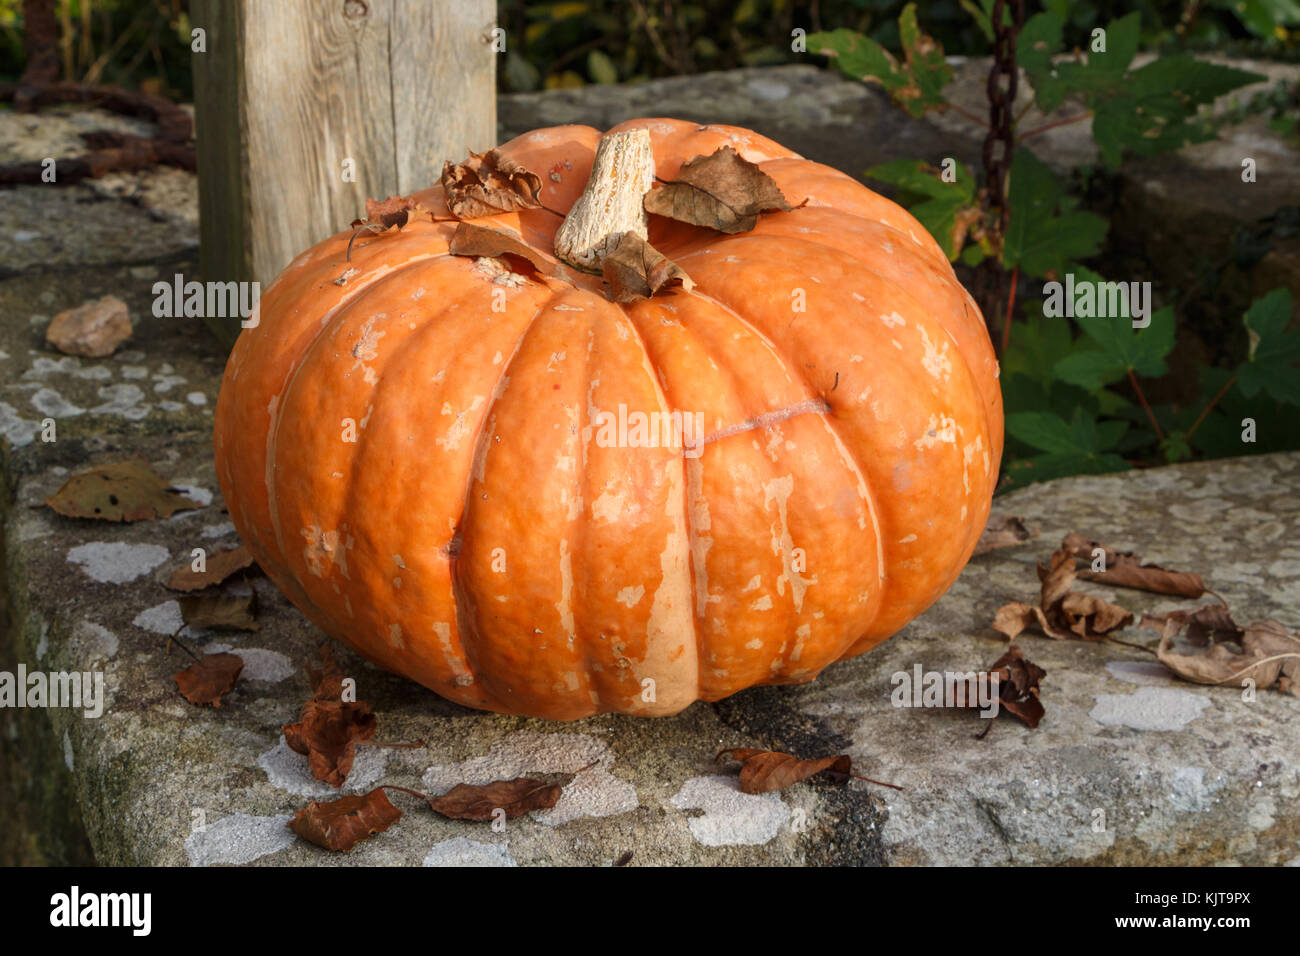 Pumpkin and dead leaves on the coping of a well in a garden during autumn - Stock Image